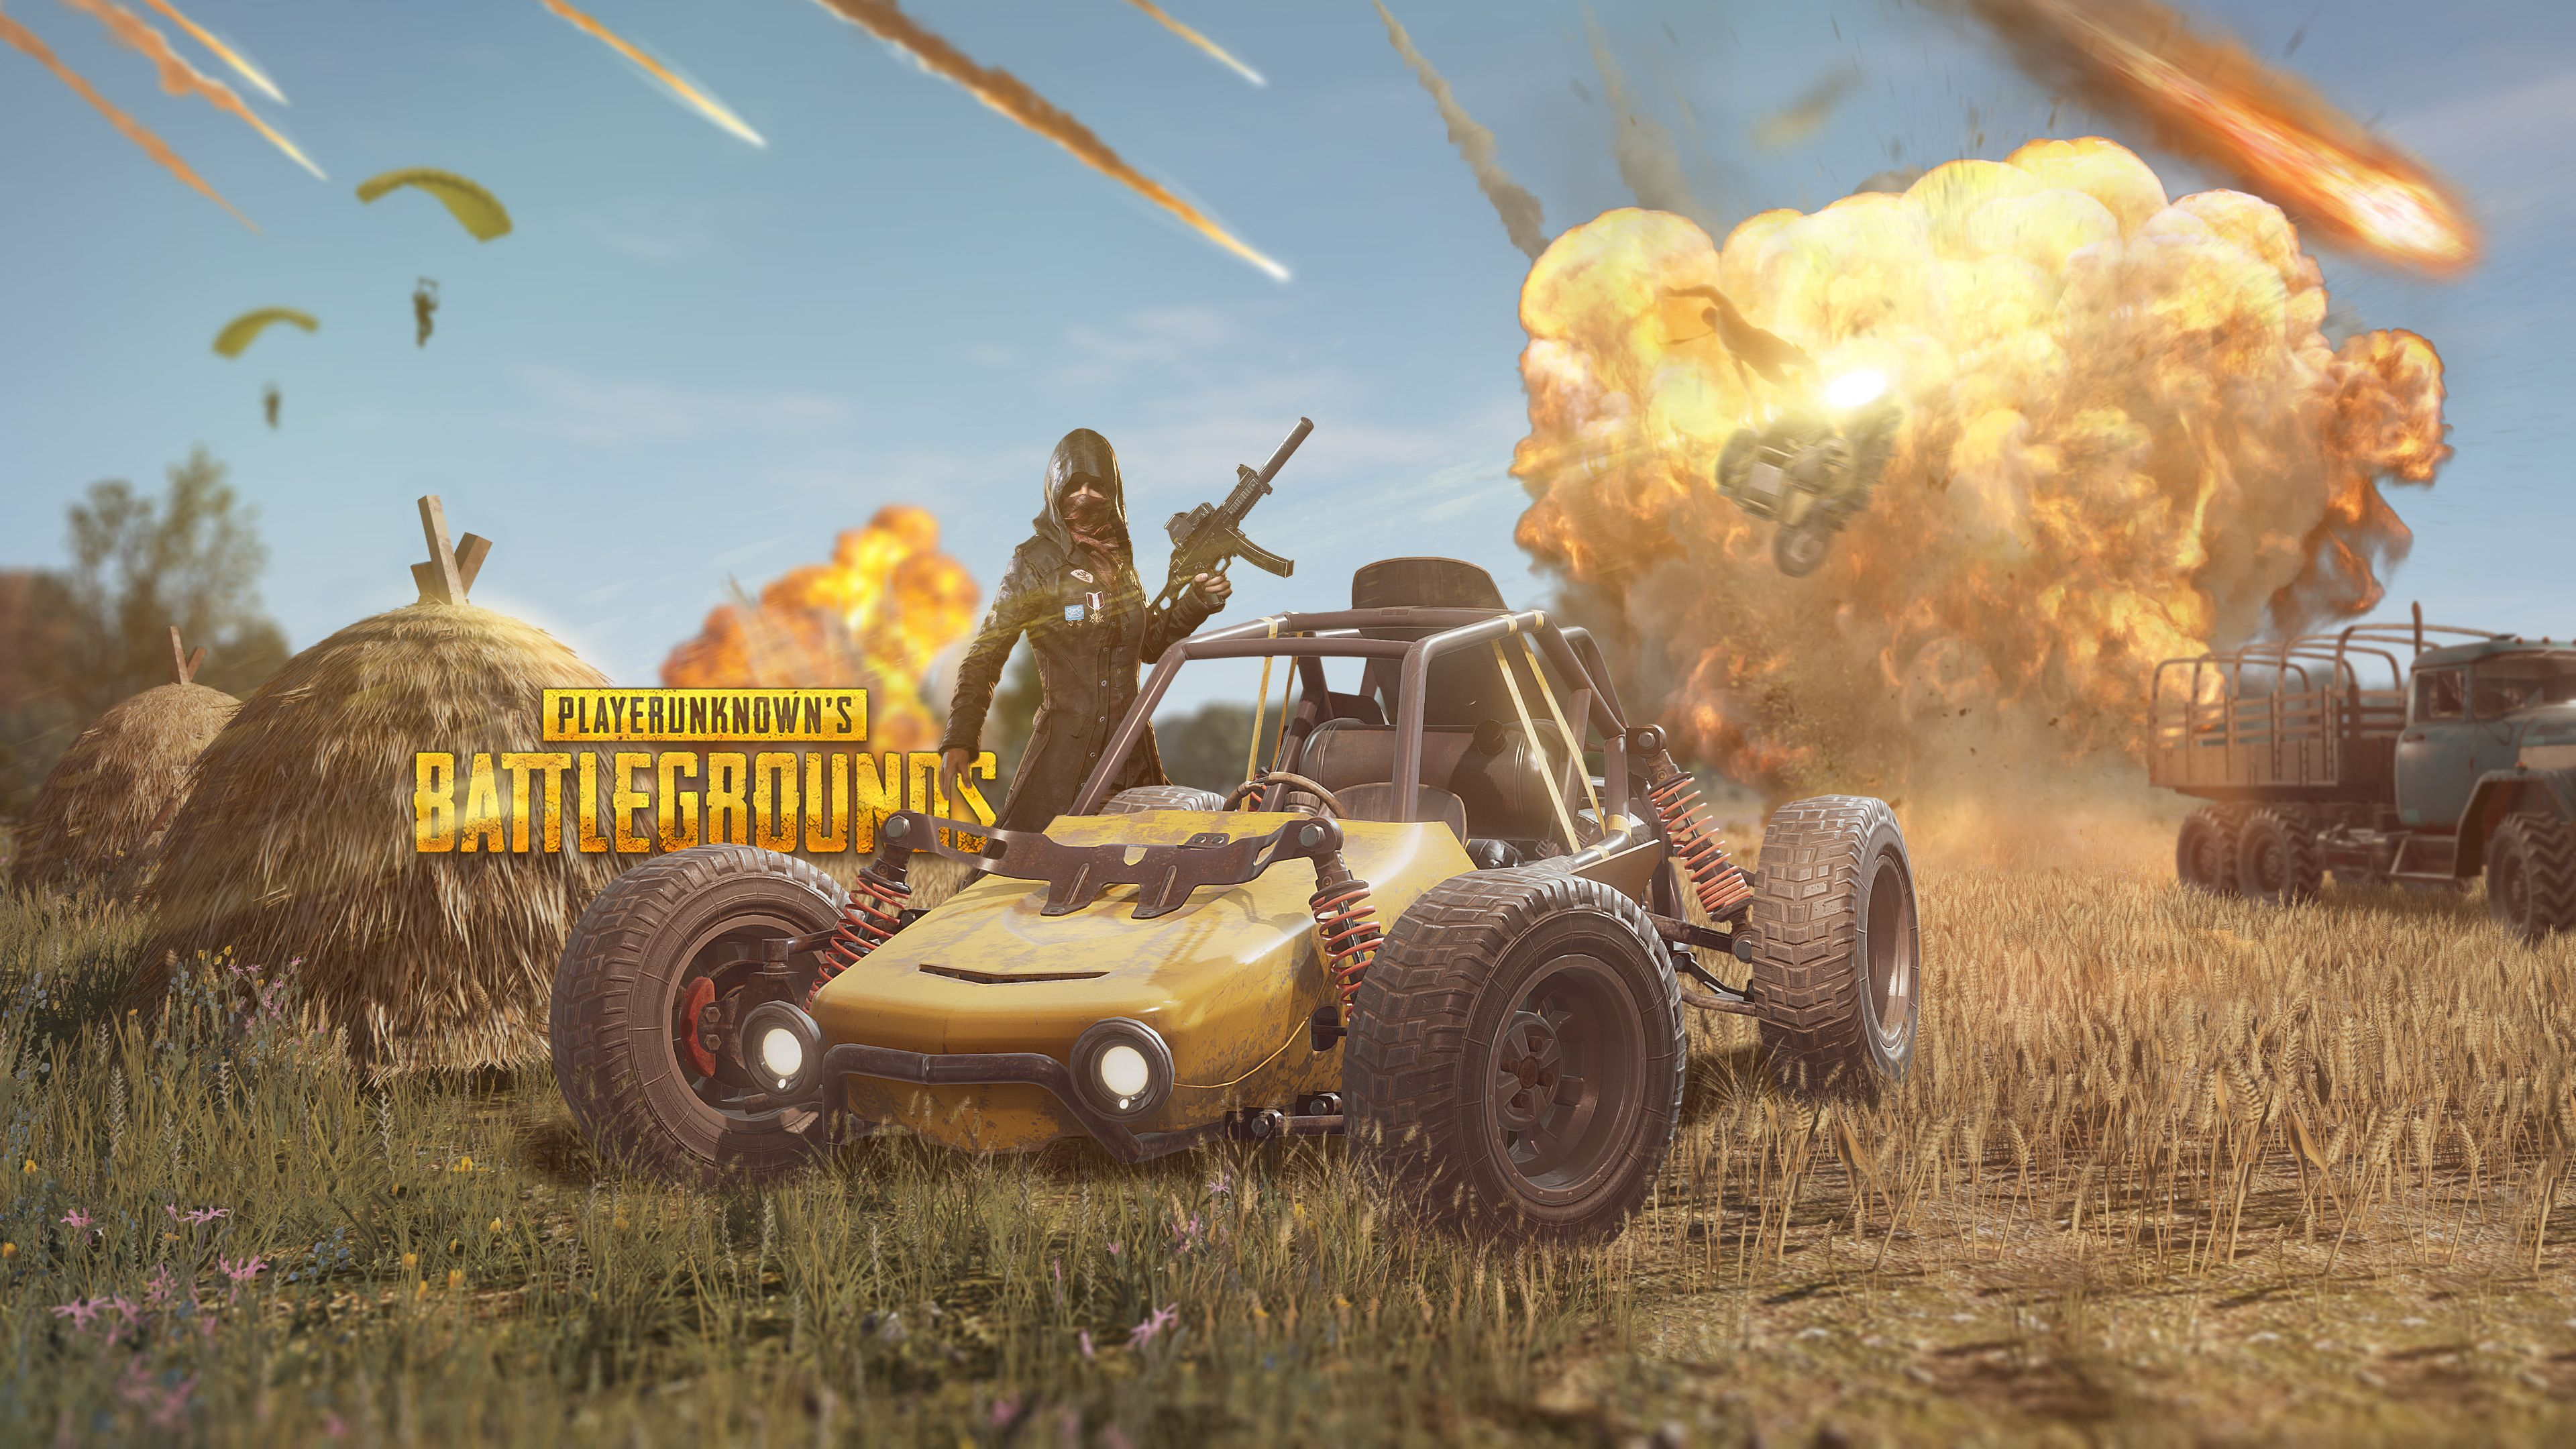 Pubg Map Hd Wallpaper: Pubg Wallpapers Widescreen On Wallpaper 1080p HD